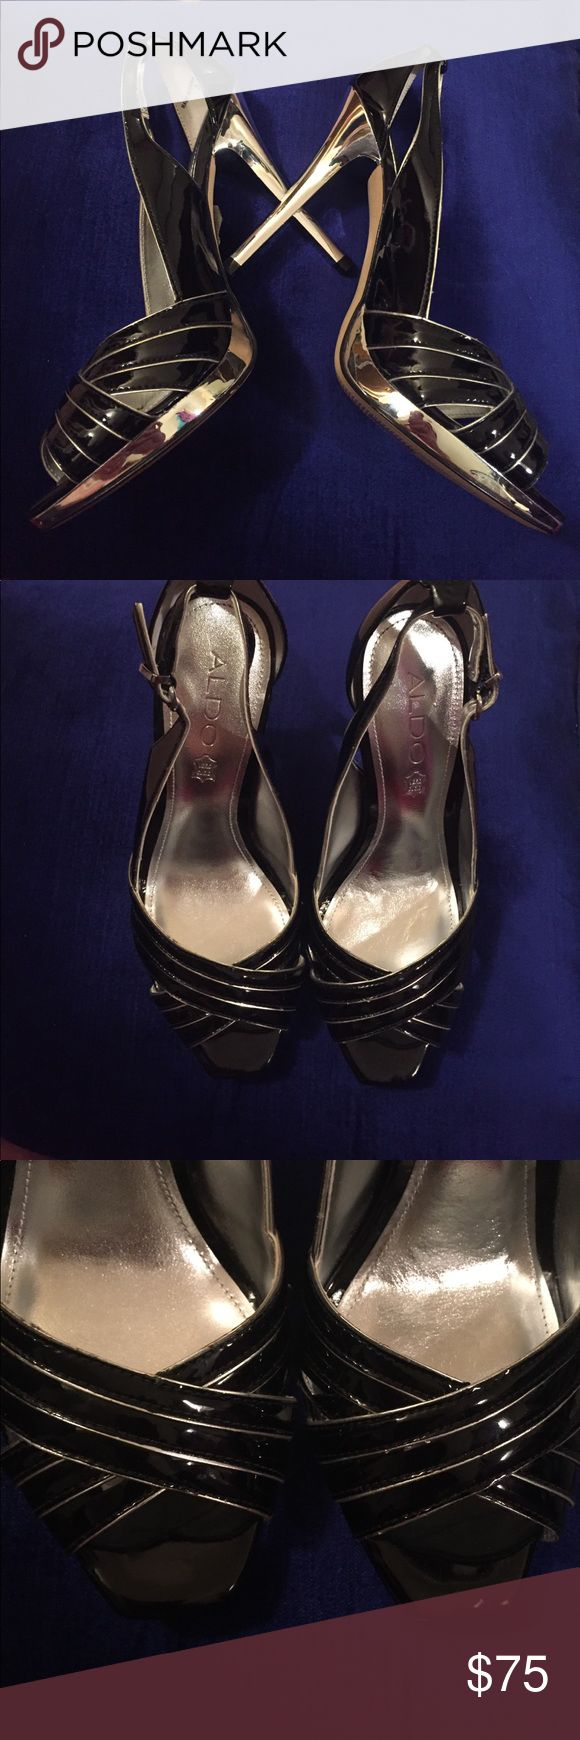 """Aldo Black and Silver Open Toe Heels 4.5"""" mirrored silver heel with small platform.  Buckled in back.  🚫No Trades🚫 Aldo Shoes Heels"""